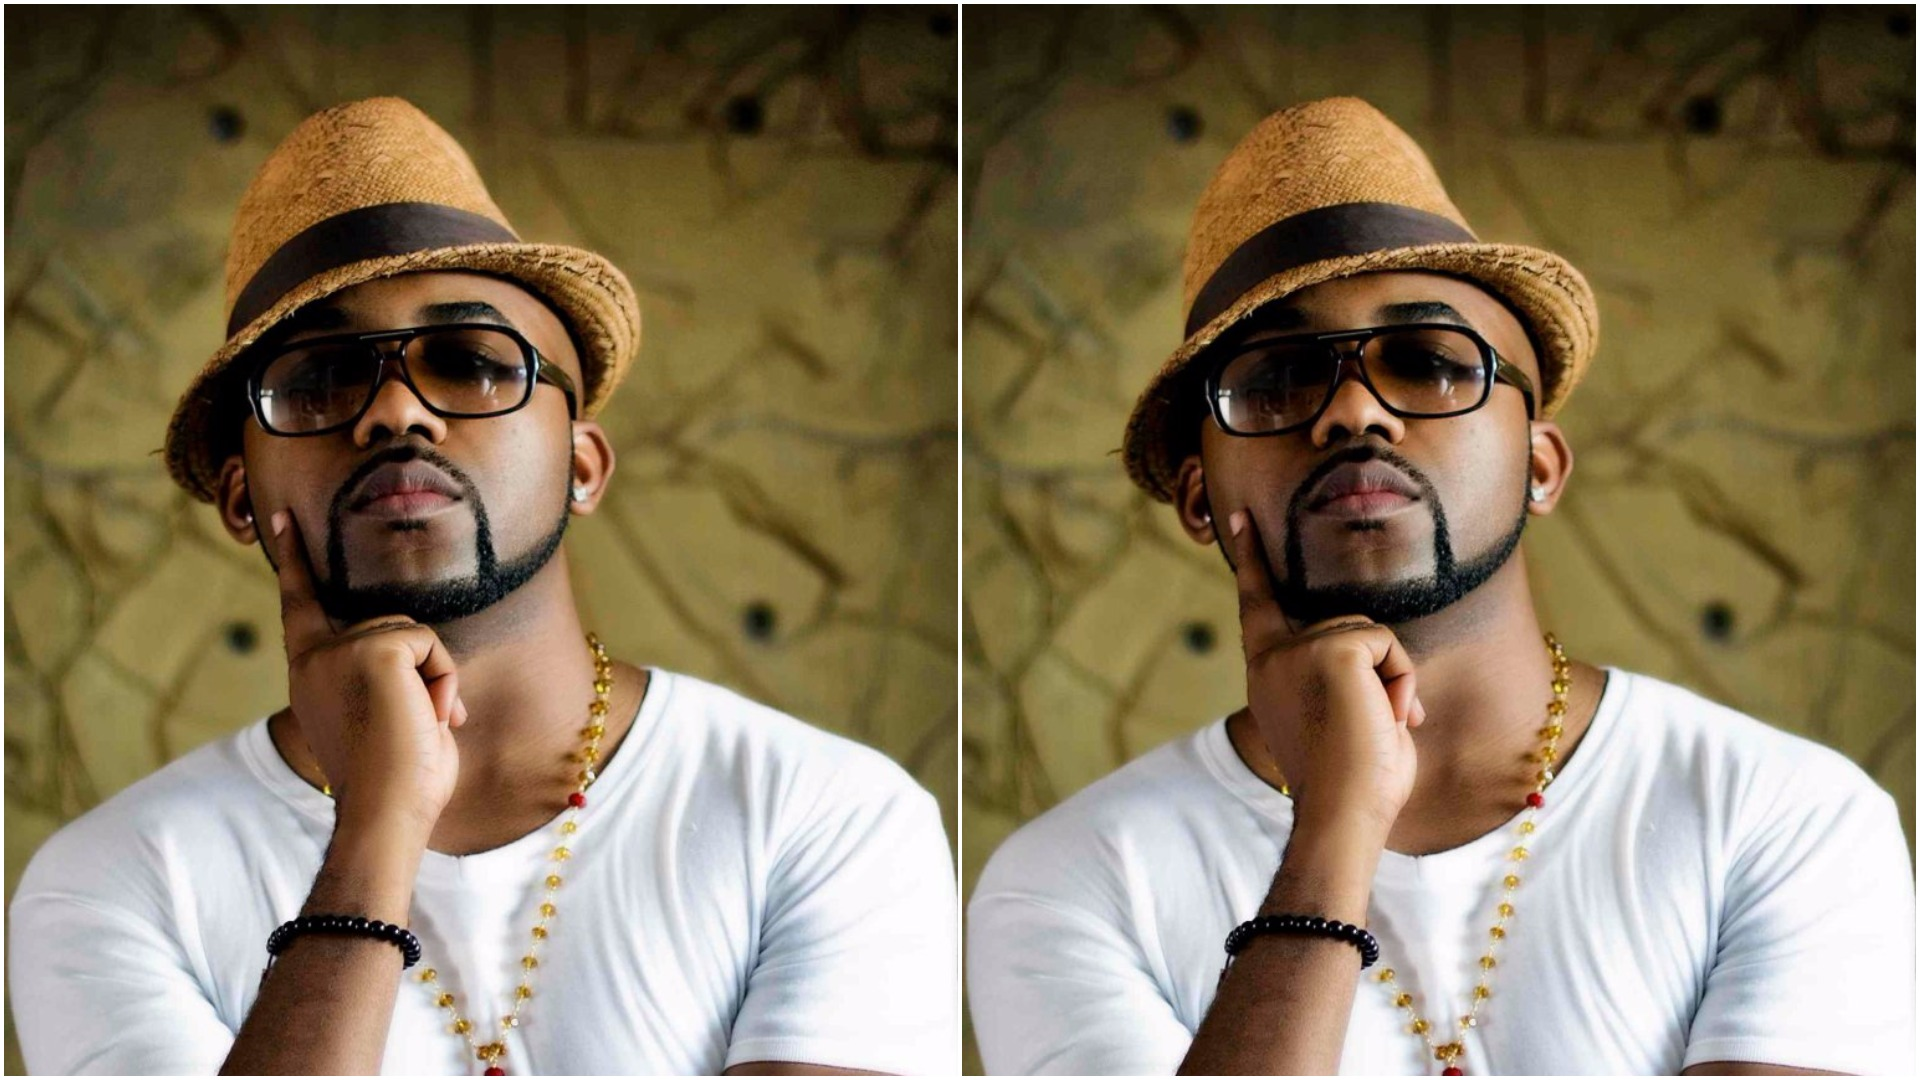 'I'm a married man, don't touch me like that' - Banky W cautions female fan at a concert